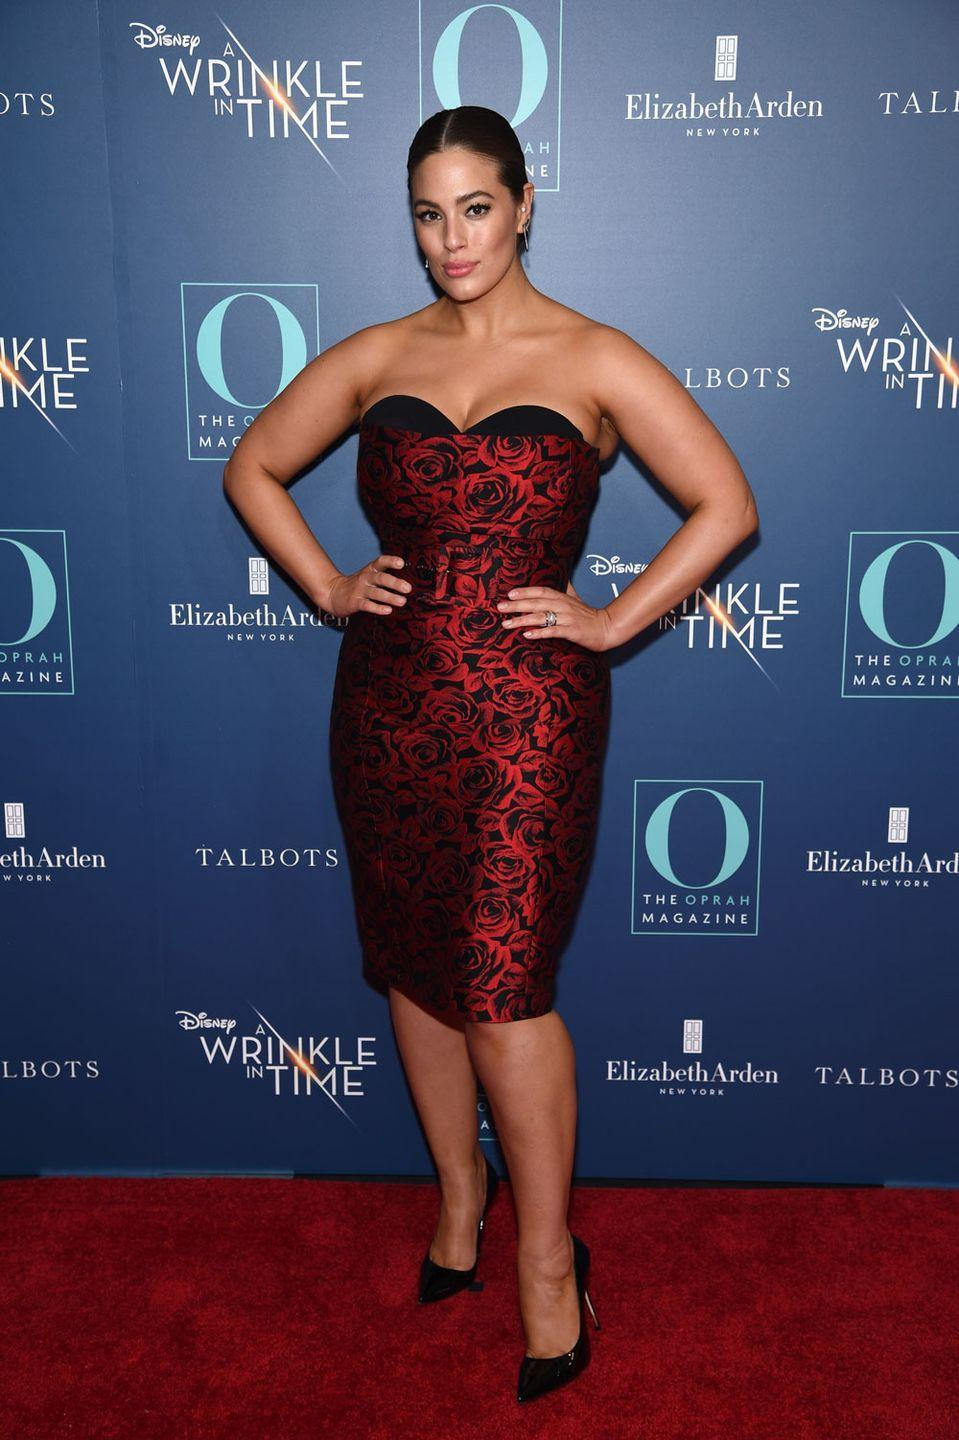 <p>Attending 'A Winkle In Time' screening: Ashley let her body do the talking in this strapless dress covered with red roses, and to show off those bronzed shoulders she kept her hair slicked back, with minimal makeup. </p>